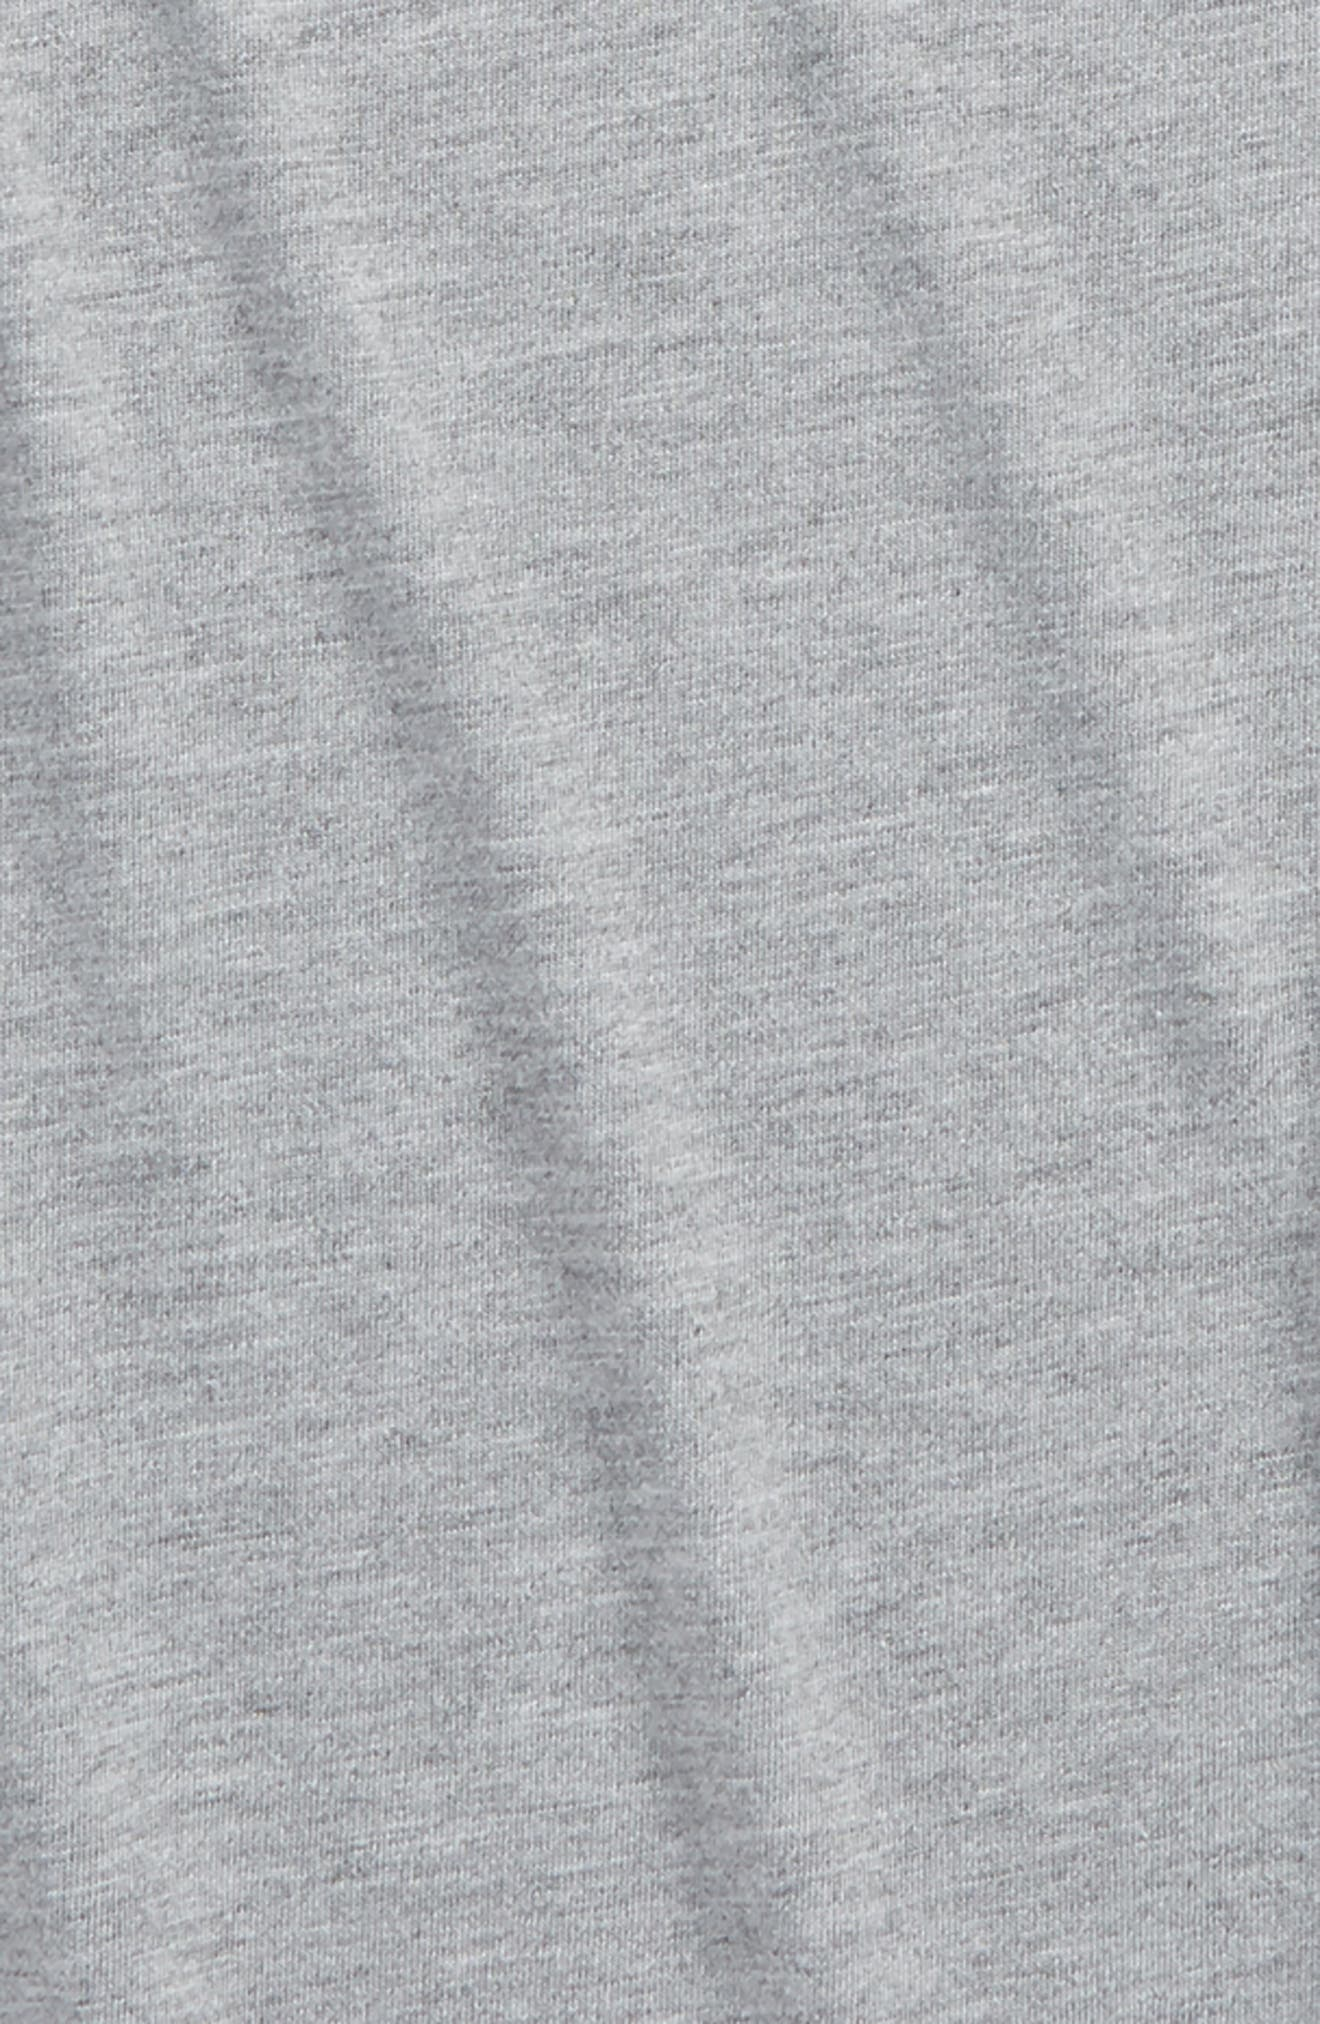 Sleep T-Shirt,                             Alternate thumbnail 2, color,                             GREY MEDIUM HEATHER